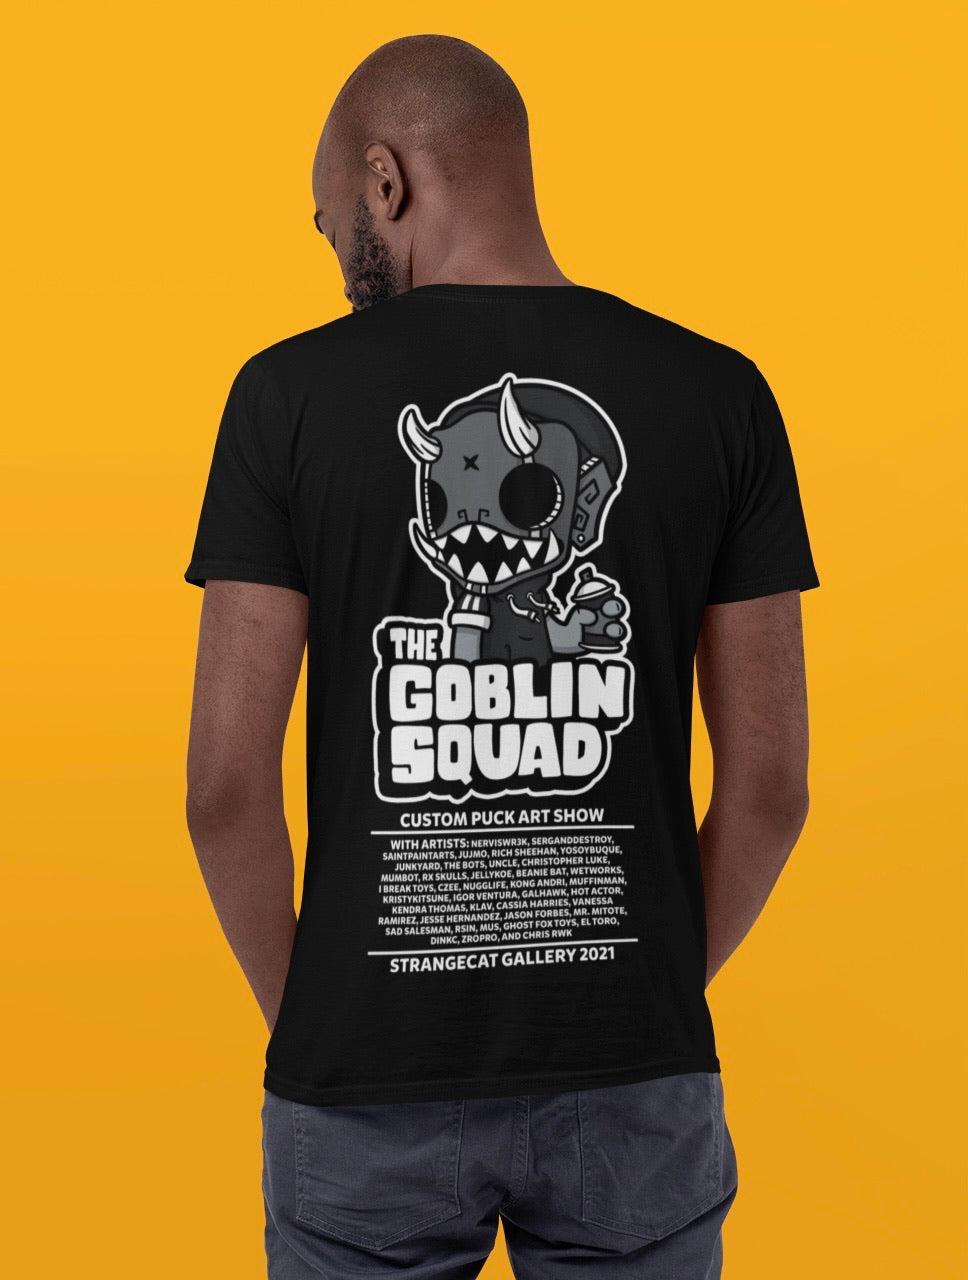 Goblin Squad Shirt by Chris Dokebi - Preorder